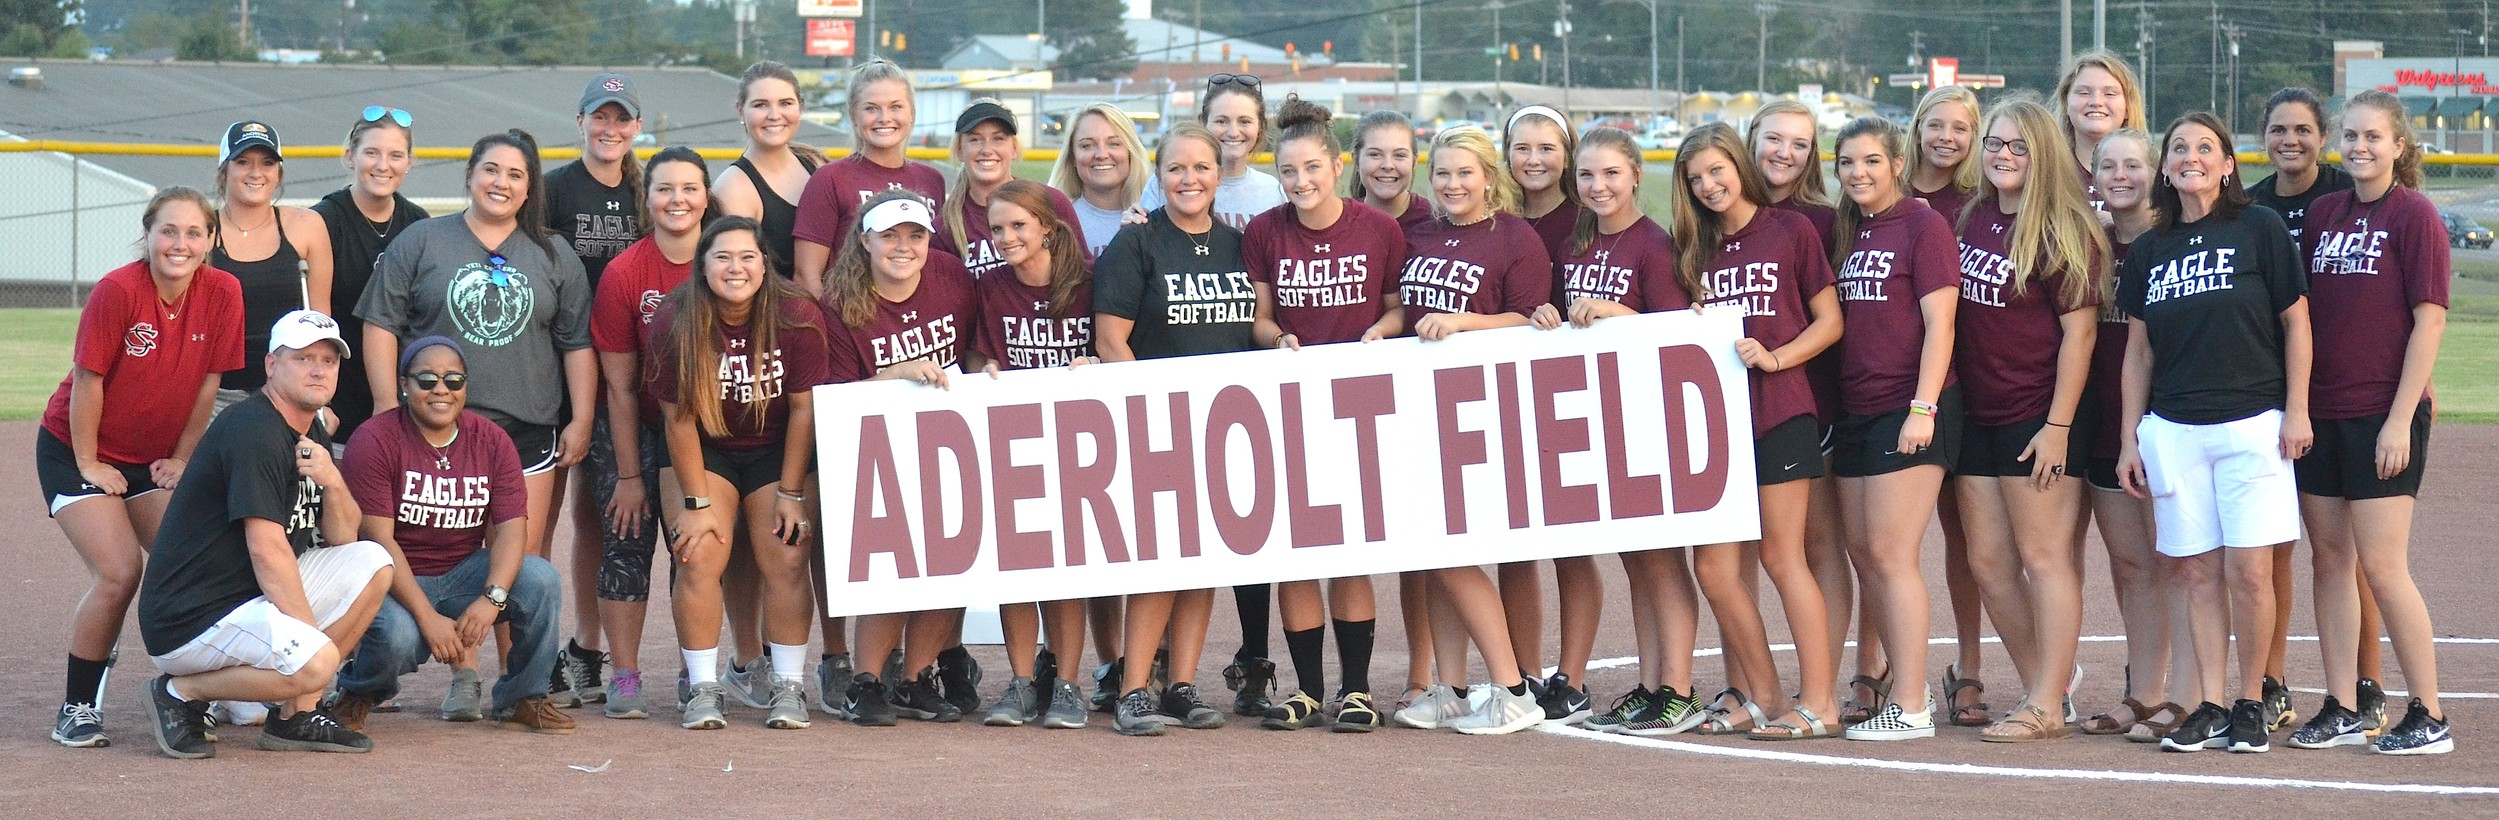 Sumiton Christian softball players from the past joined recent players in honoring coach Jessica Aderholt at the school on Thursday. The Eagles' renamed the softball field in Aderholt's honor.